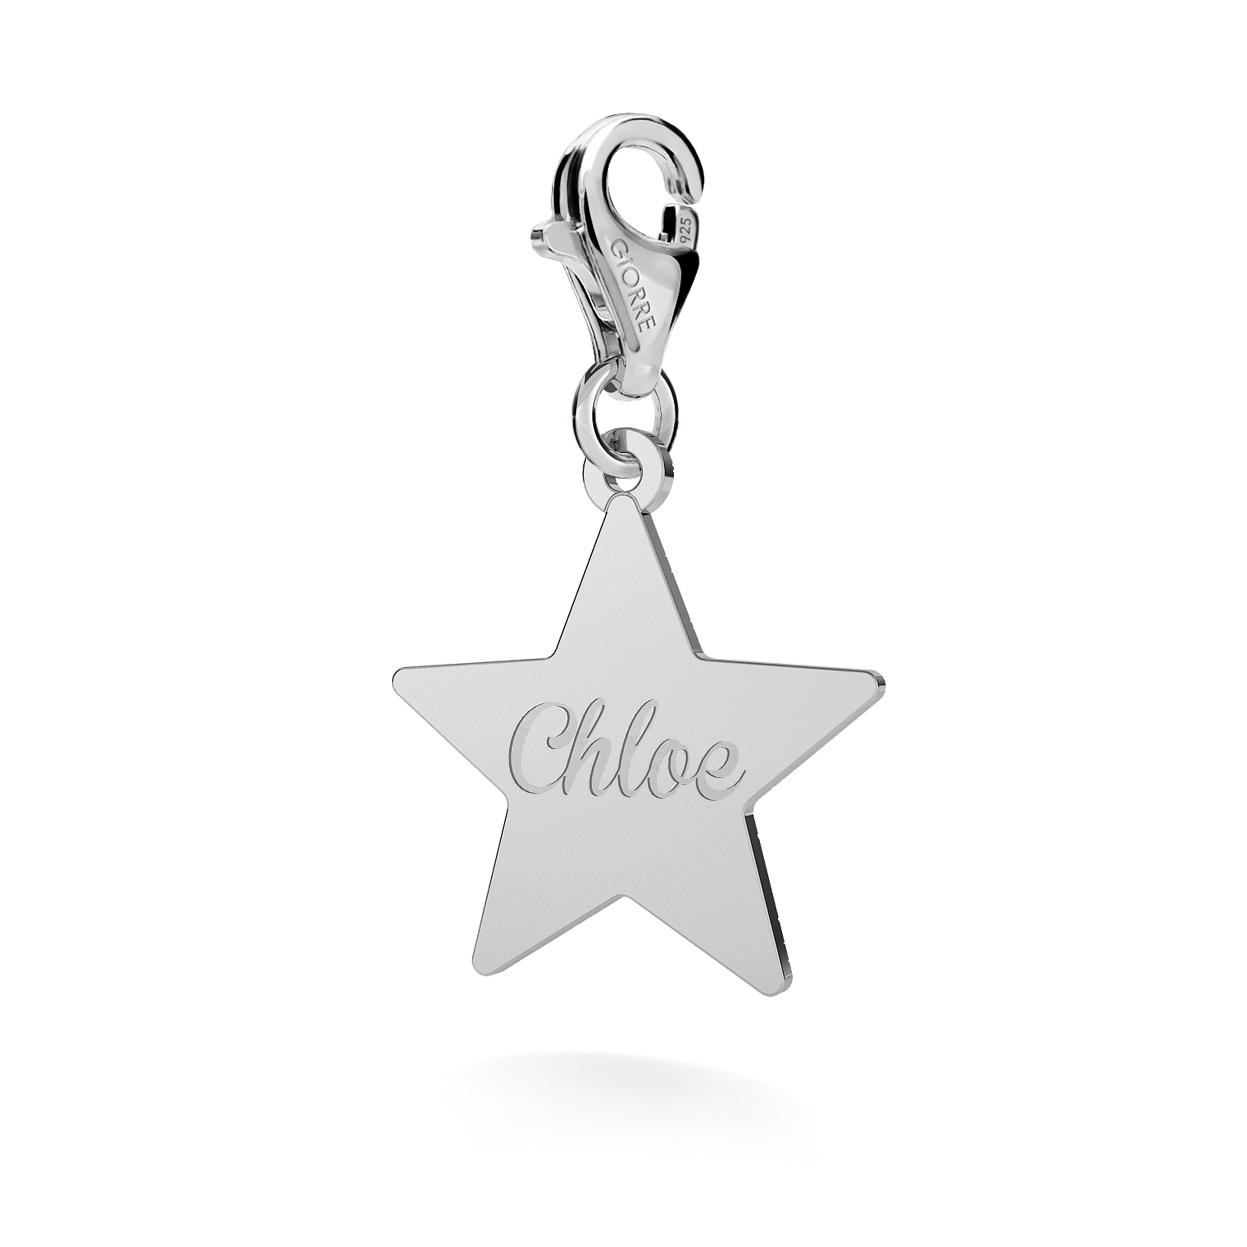 CHARM WITH ENGRAVE, STAR, SILVER 925,  RHODIUM OR GOLD PLATED